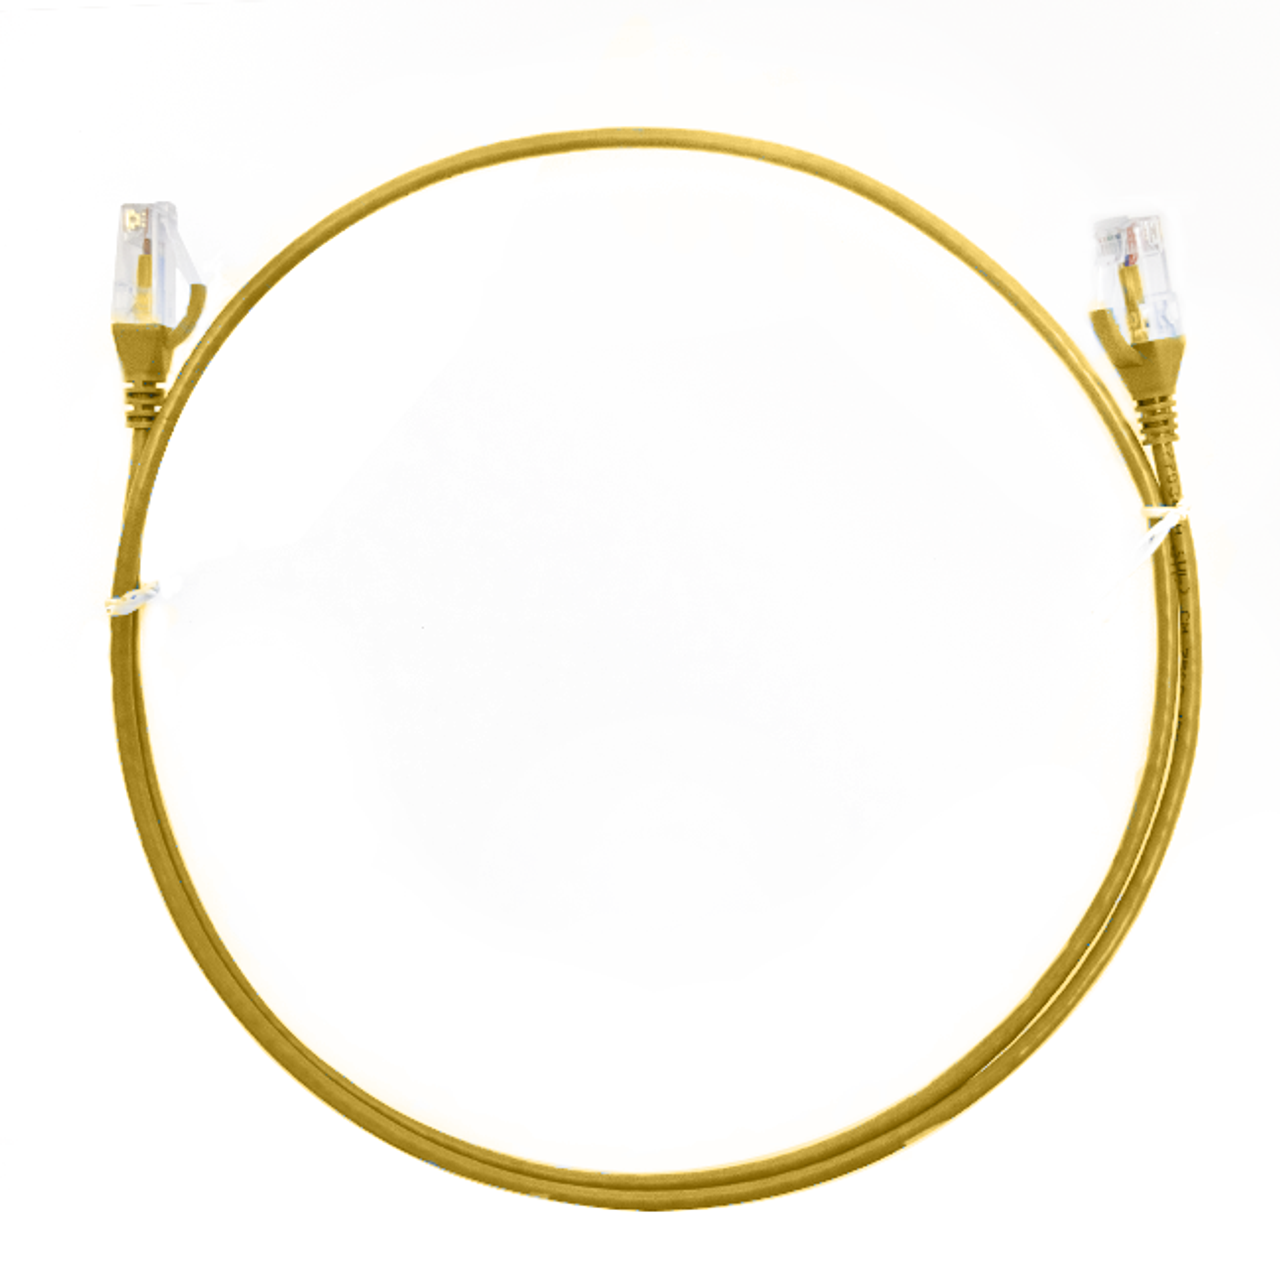 Image for 0.15m Cat 6 RJ45 RJ45 Ultra Thin LSZH Network Cables  : Yellow CX Computer Superstore